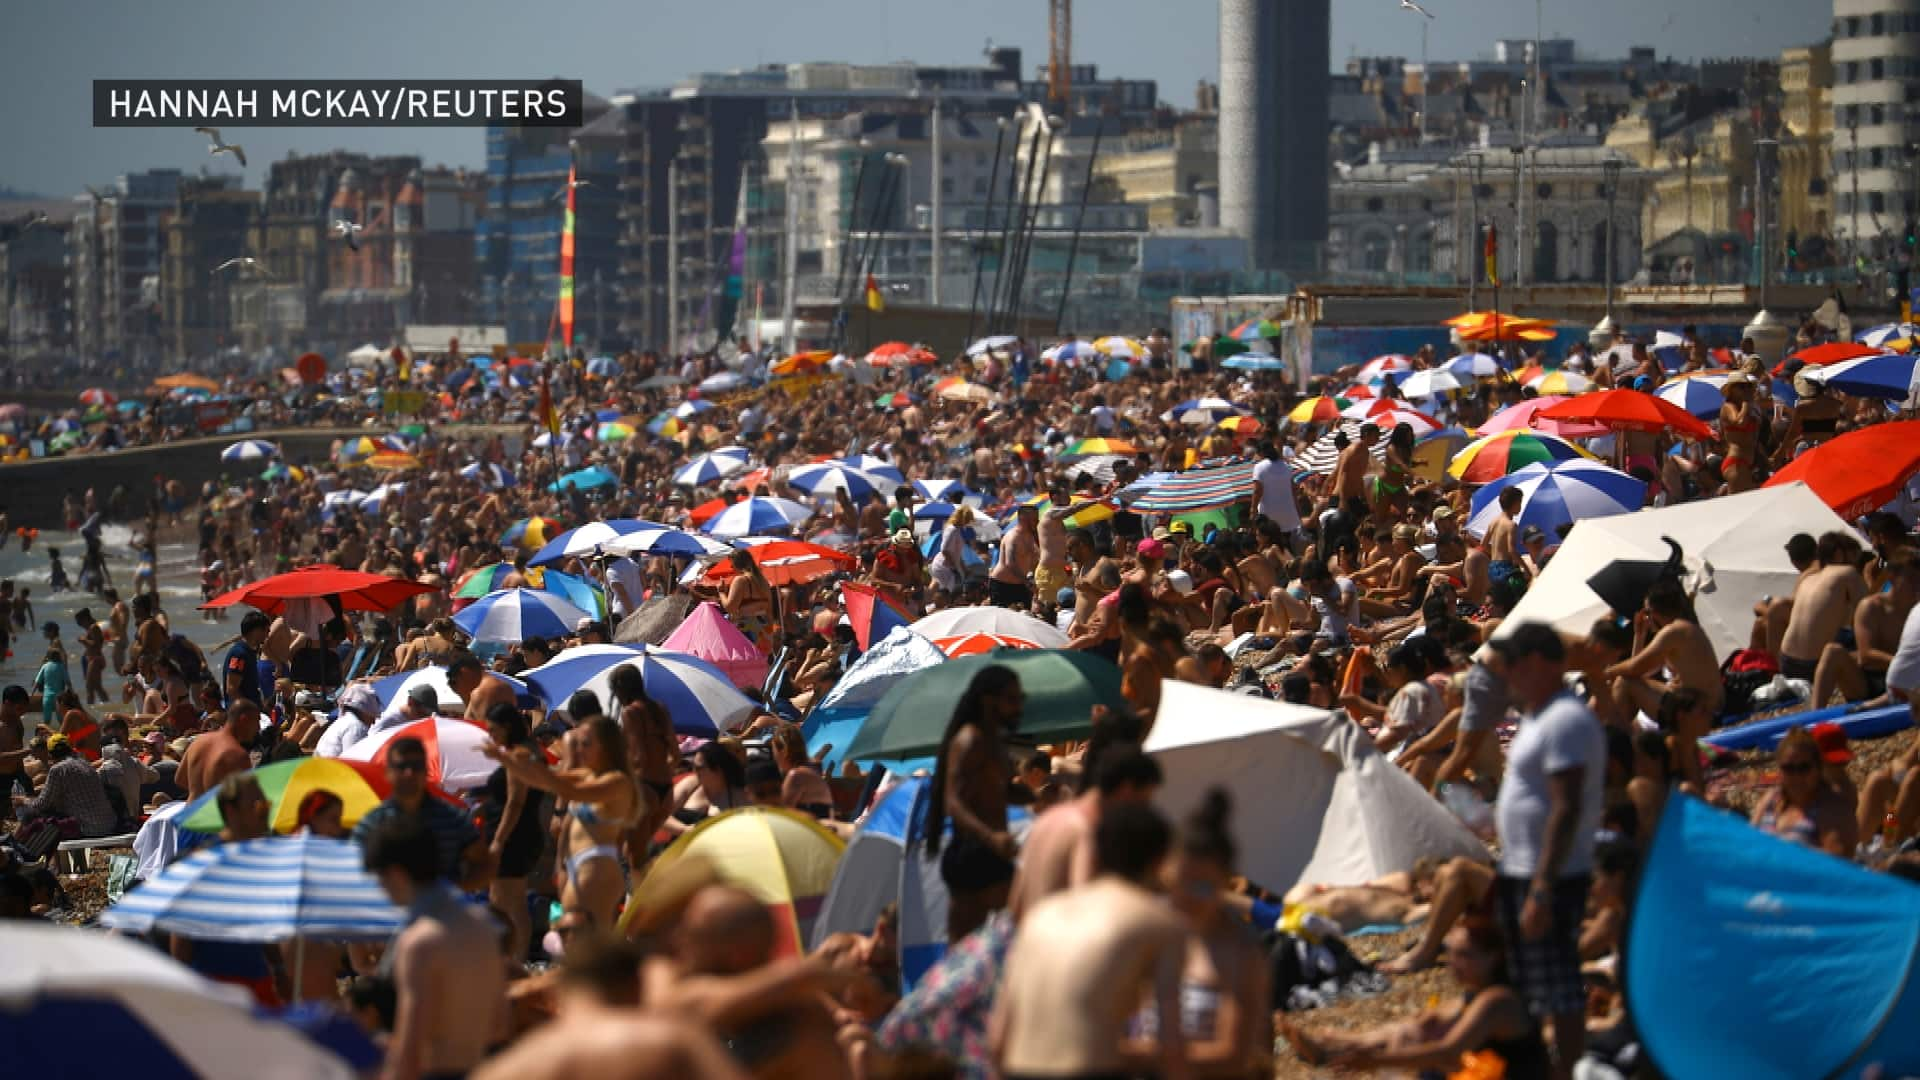 Mass Gatherings In England Stoke Concerns Over Distancing Rules Cbc News